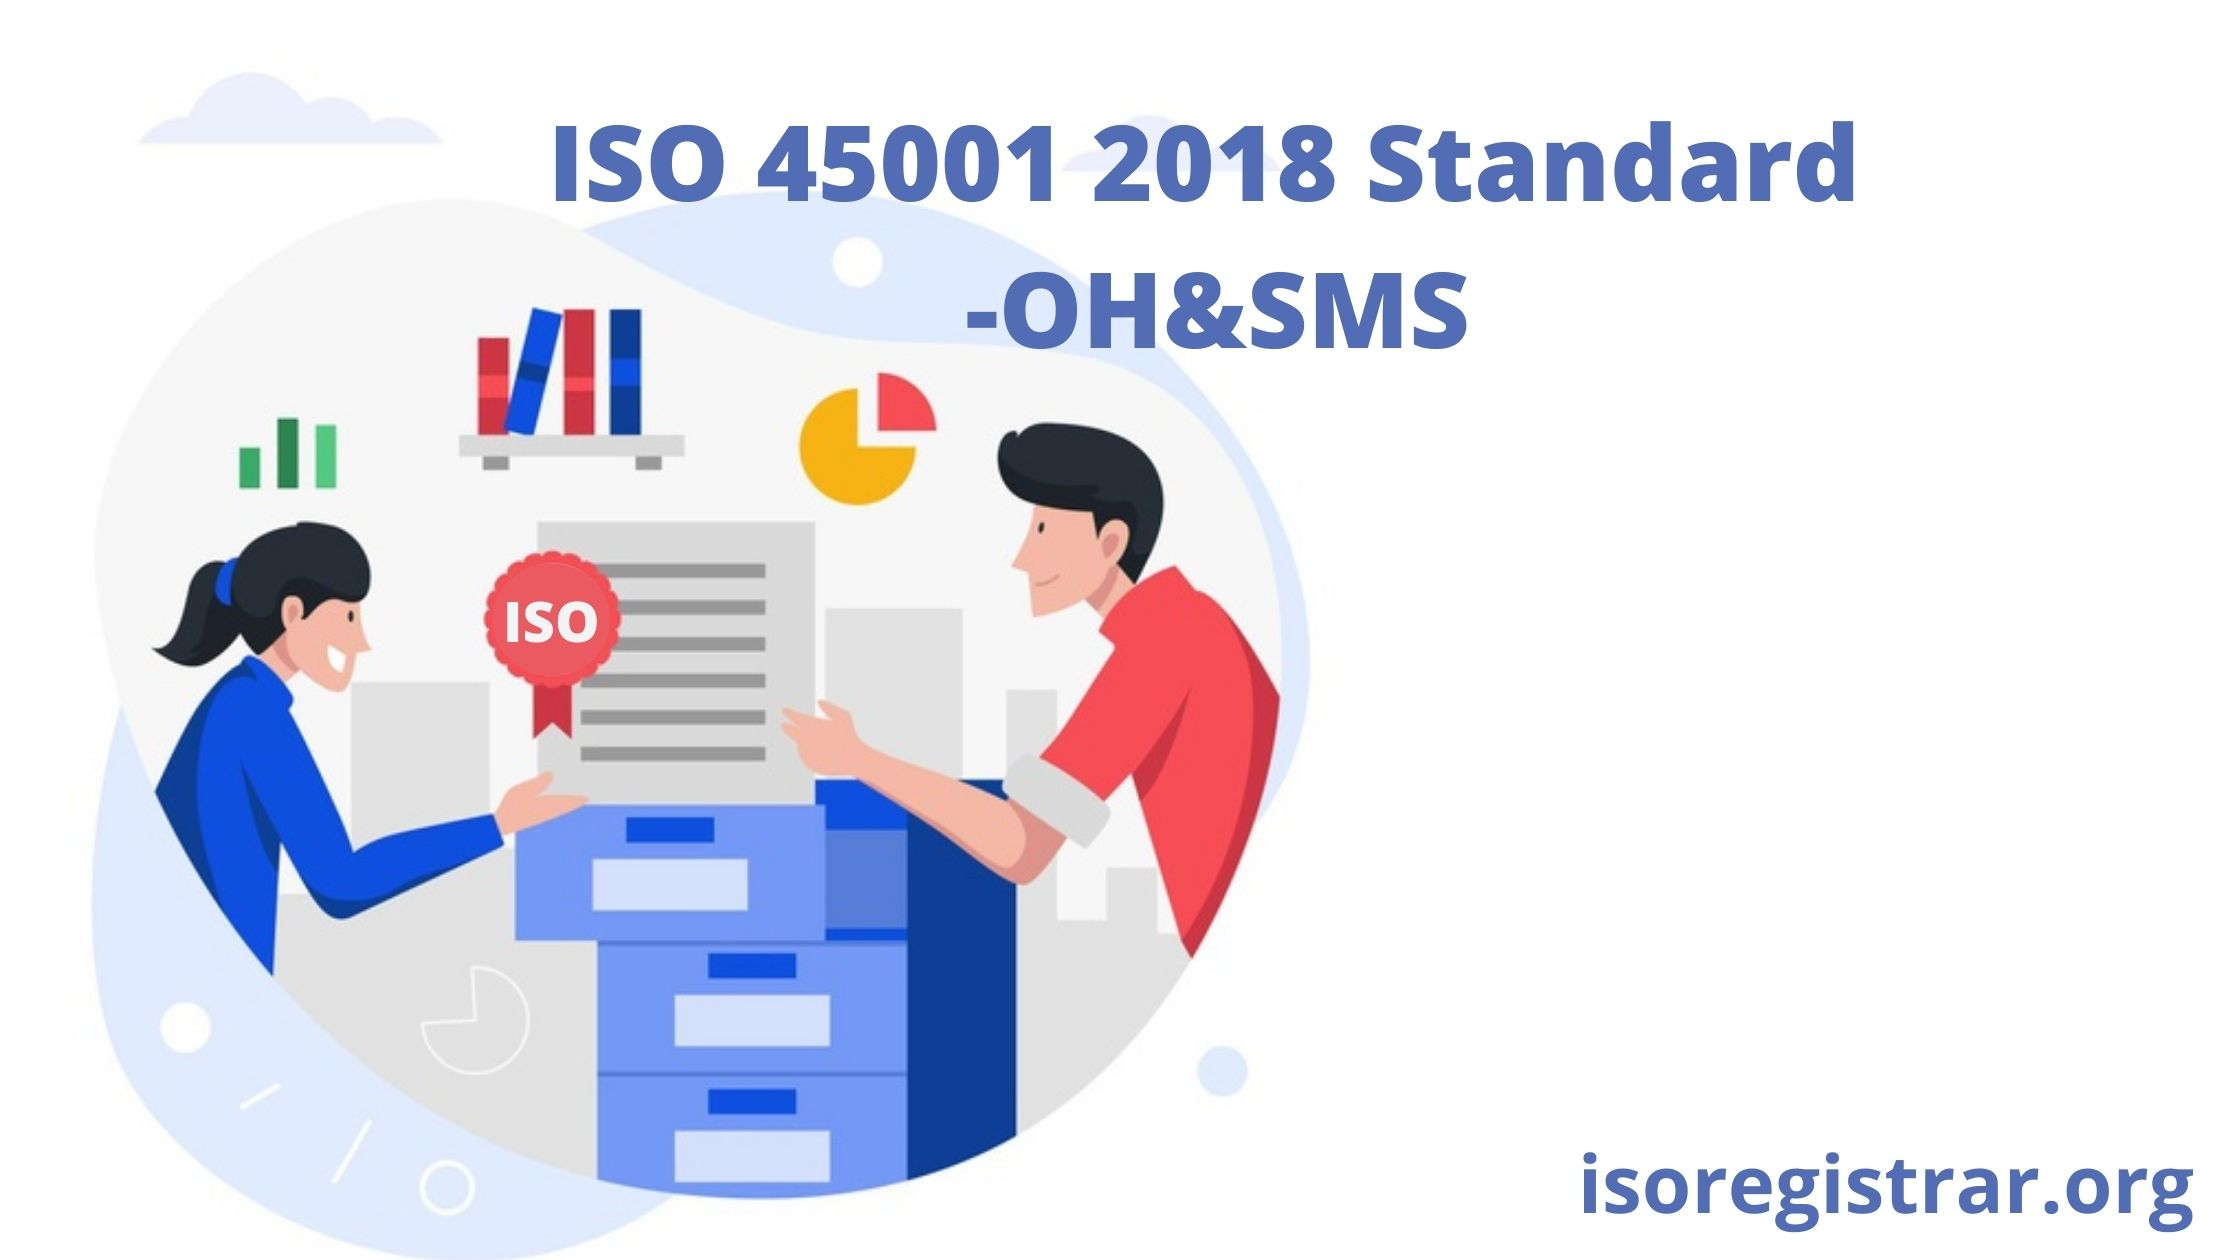 ISO 45001 2018 Standard  -  OH&SMS And Its Benefits